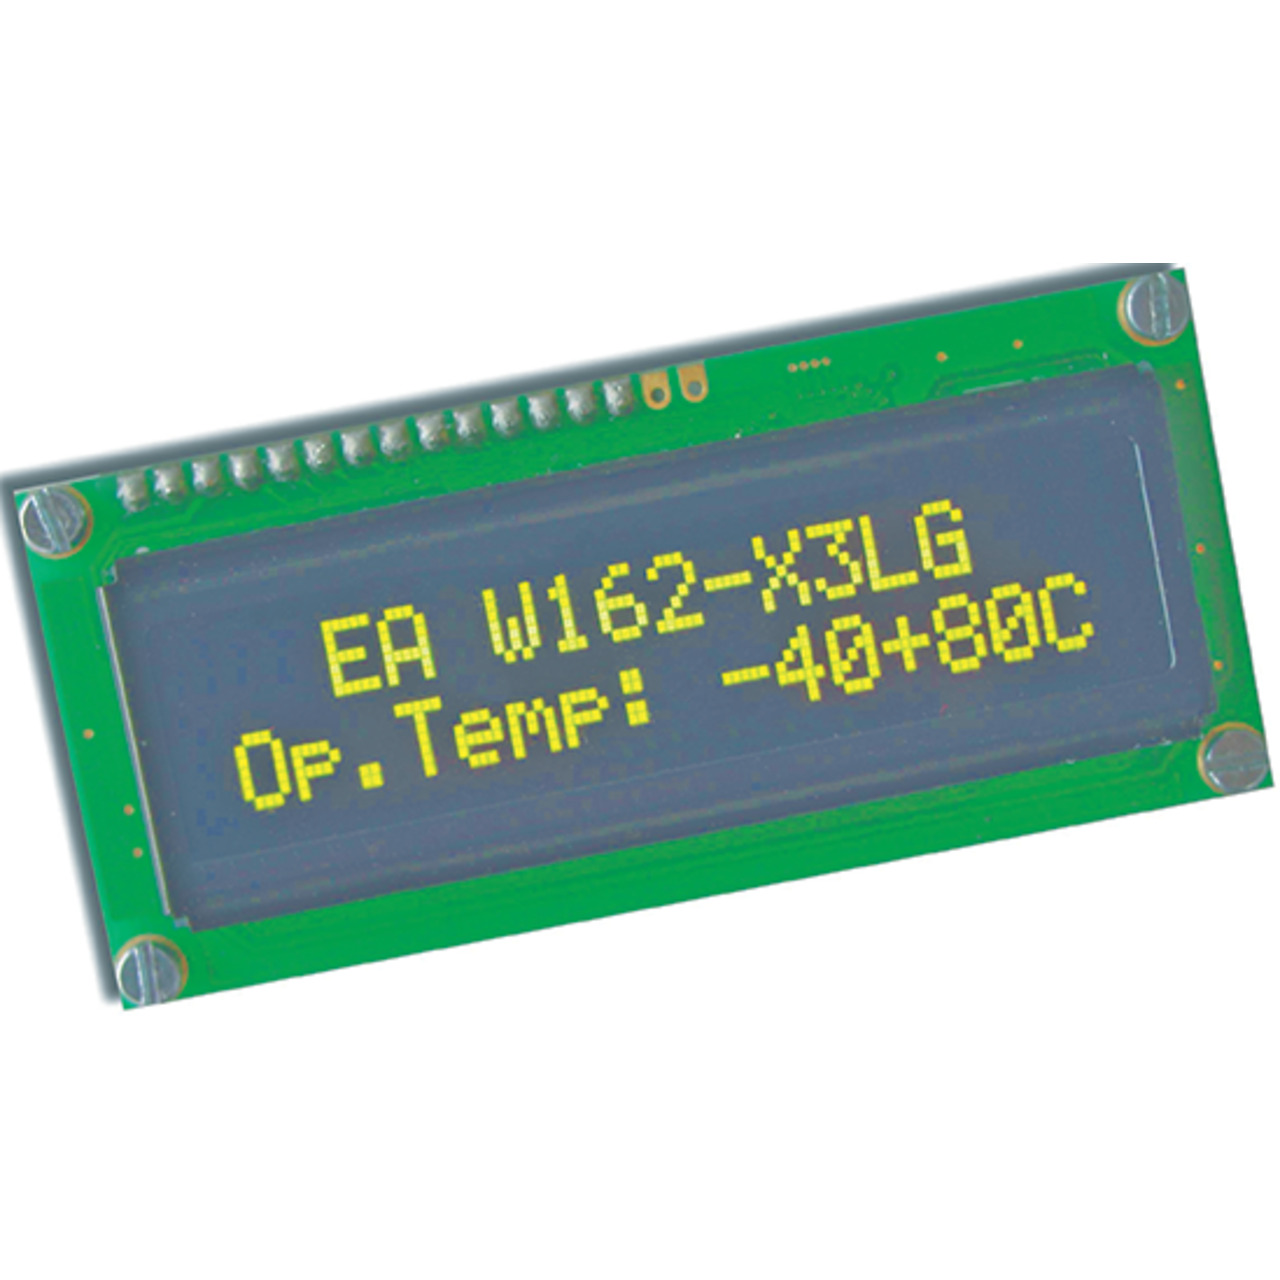 Electronic Assembly OLED-Display EAW162-X3LG 2x16- character 5-5 mm- gelb